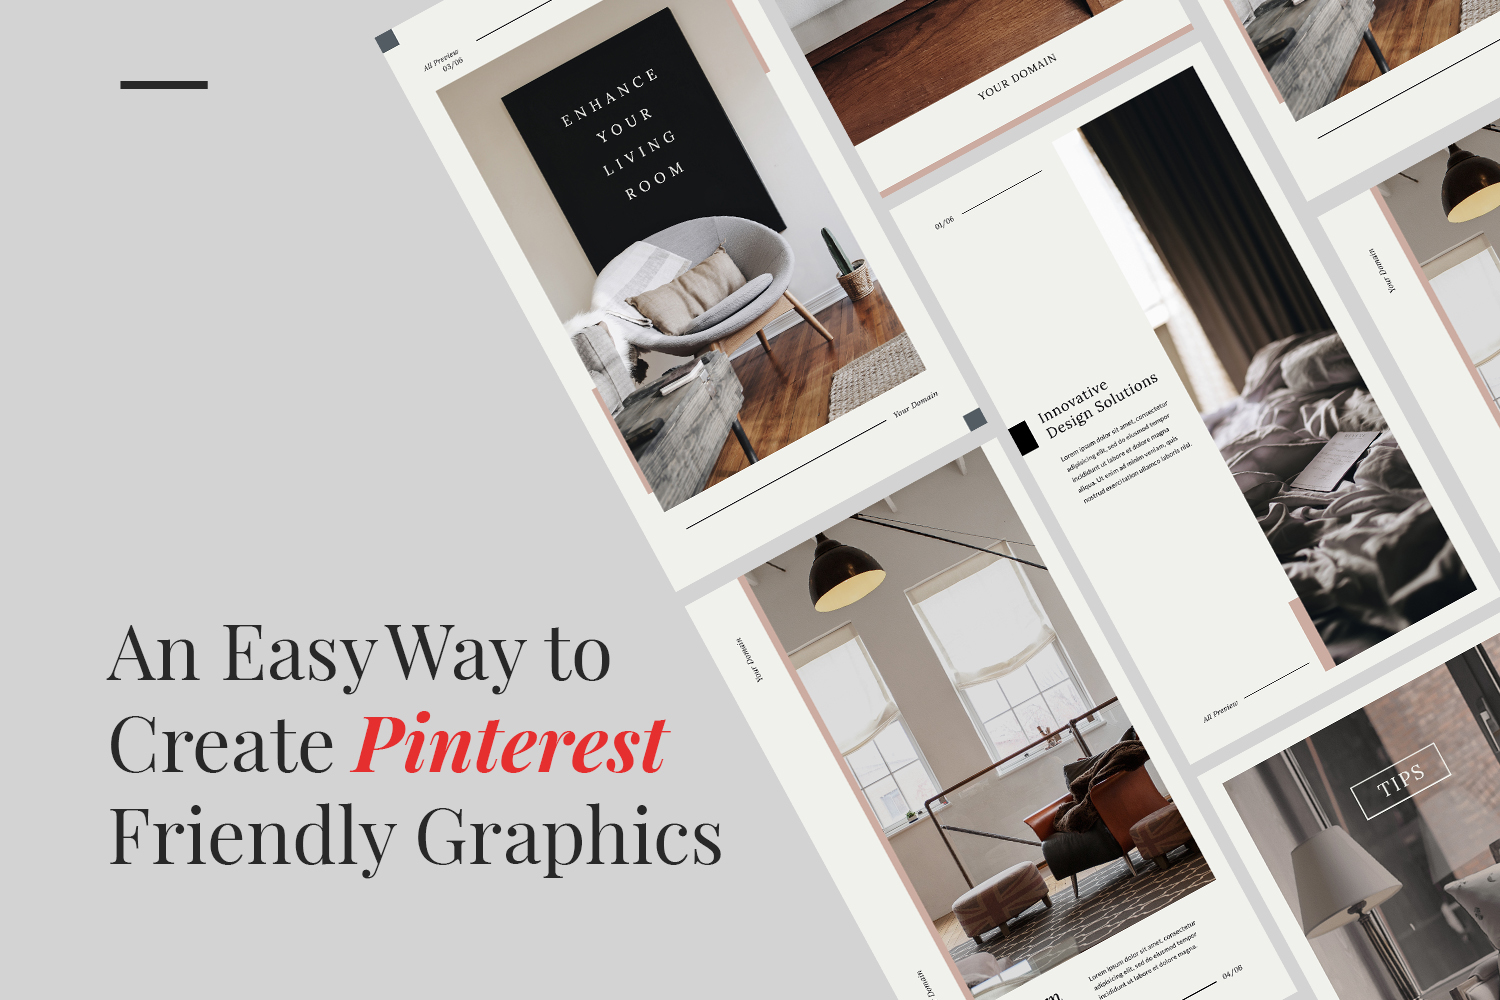 An Easy Way to Create Pinterest Friendly Graphics